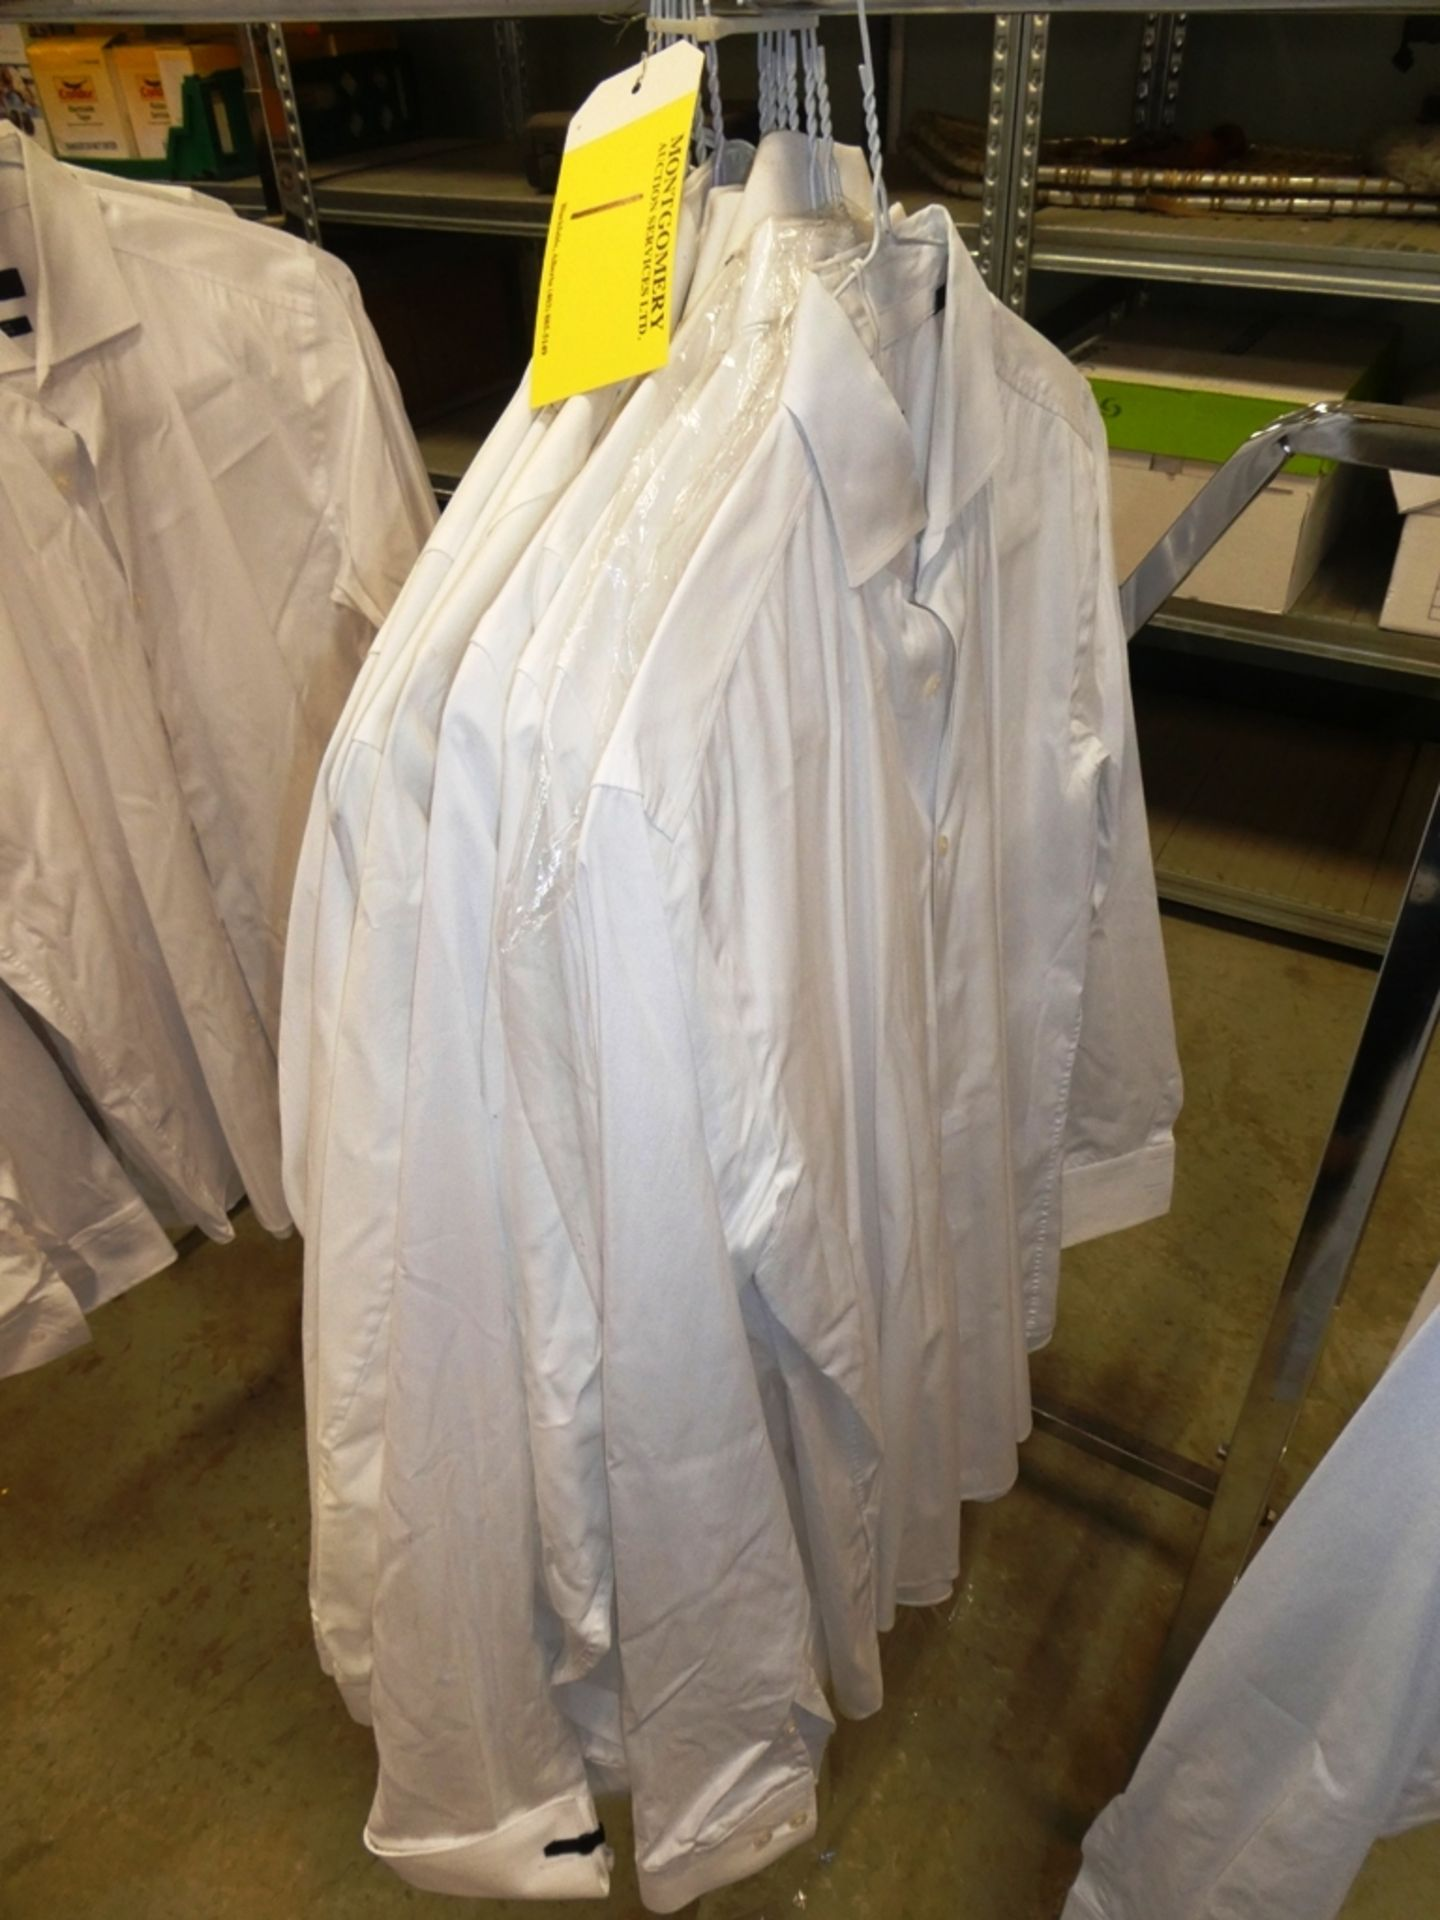 Lot 1 - L/O 15 HUGO BOSS WHITE DRESS SHIRTS - SLIM FIT, STRETCH